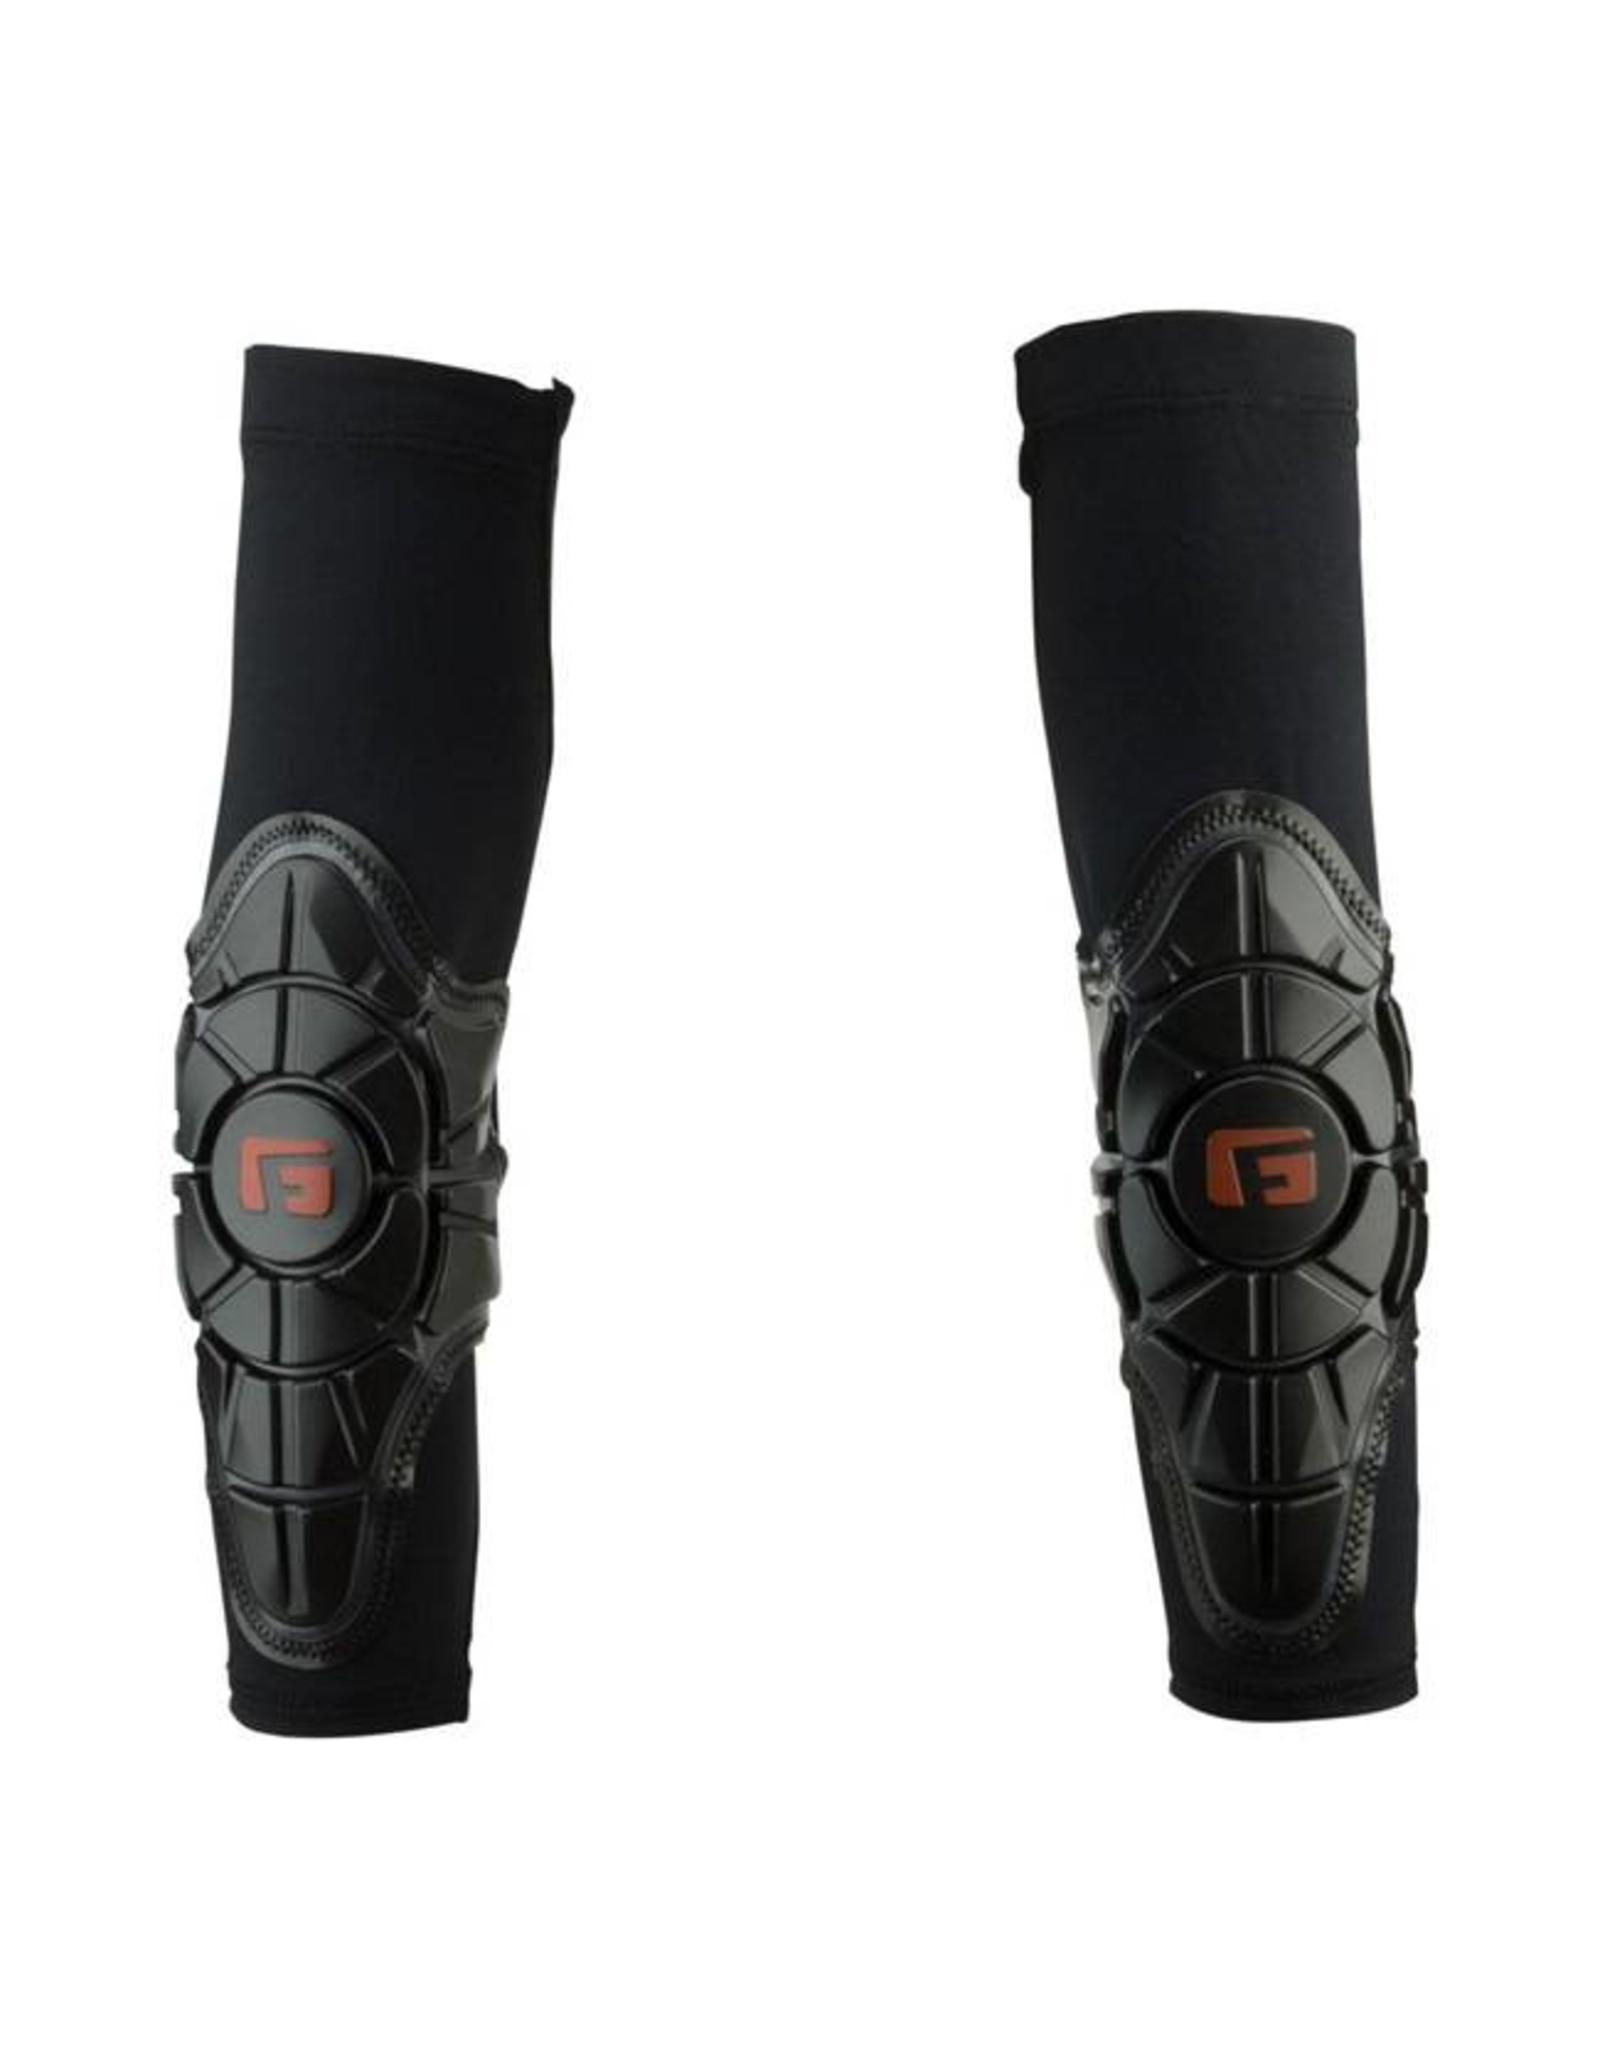 G-Form G-Form Pro-X Elbow Pad: Black, SM